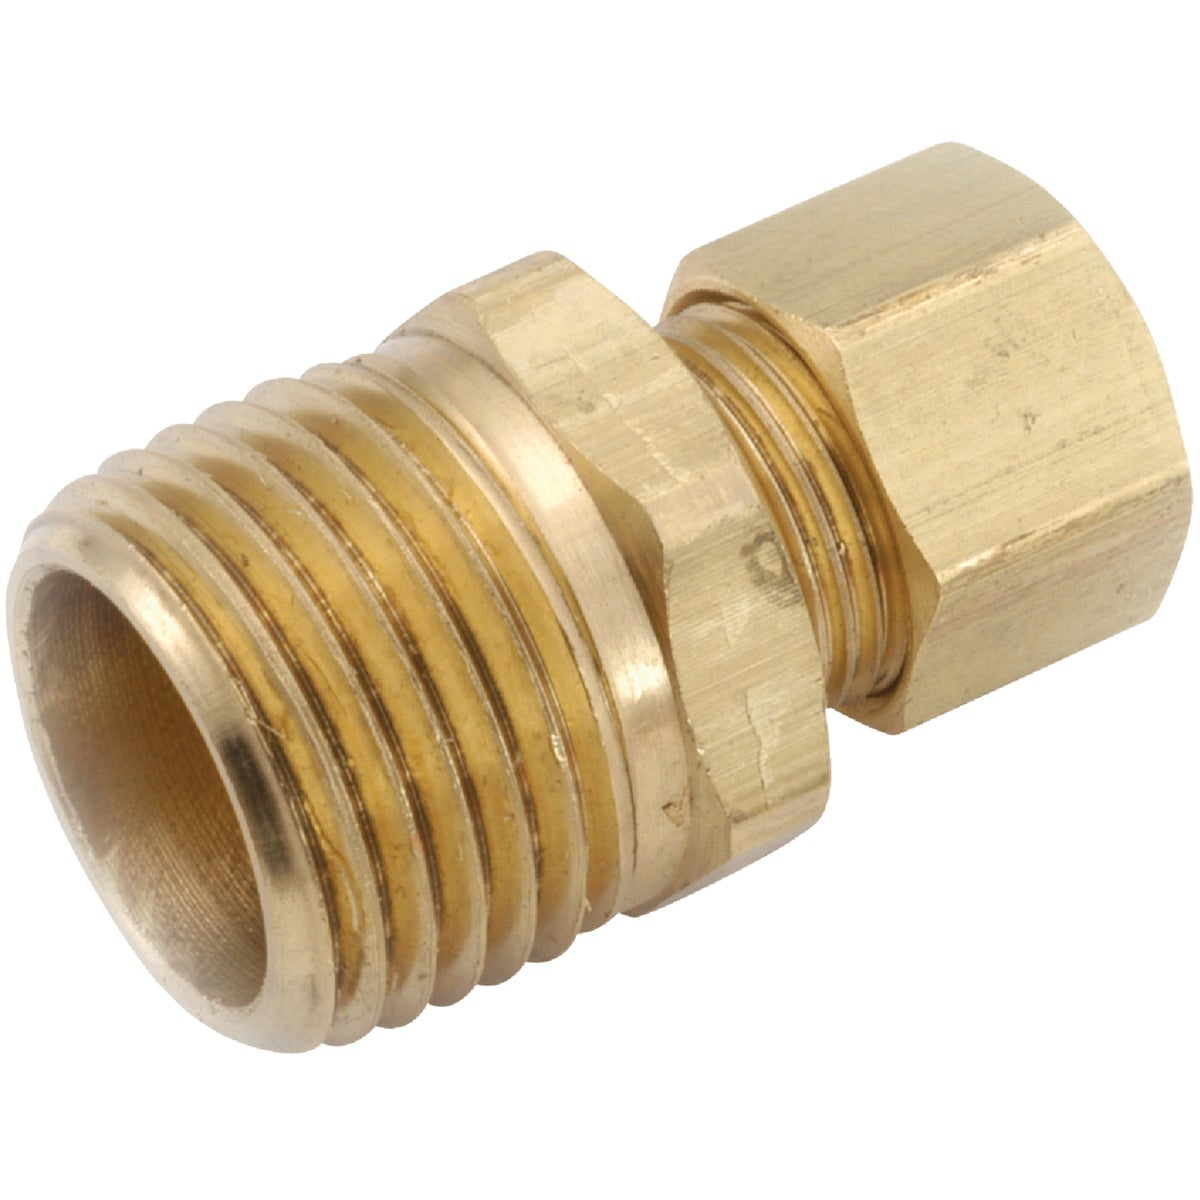 1/4X1/8 MALE CONNECTOR